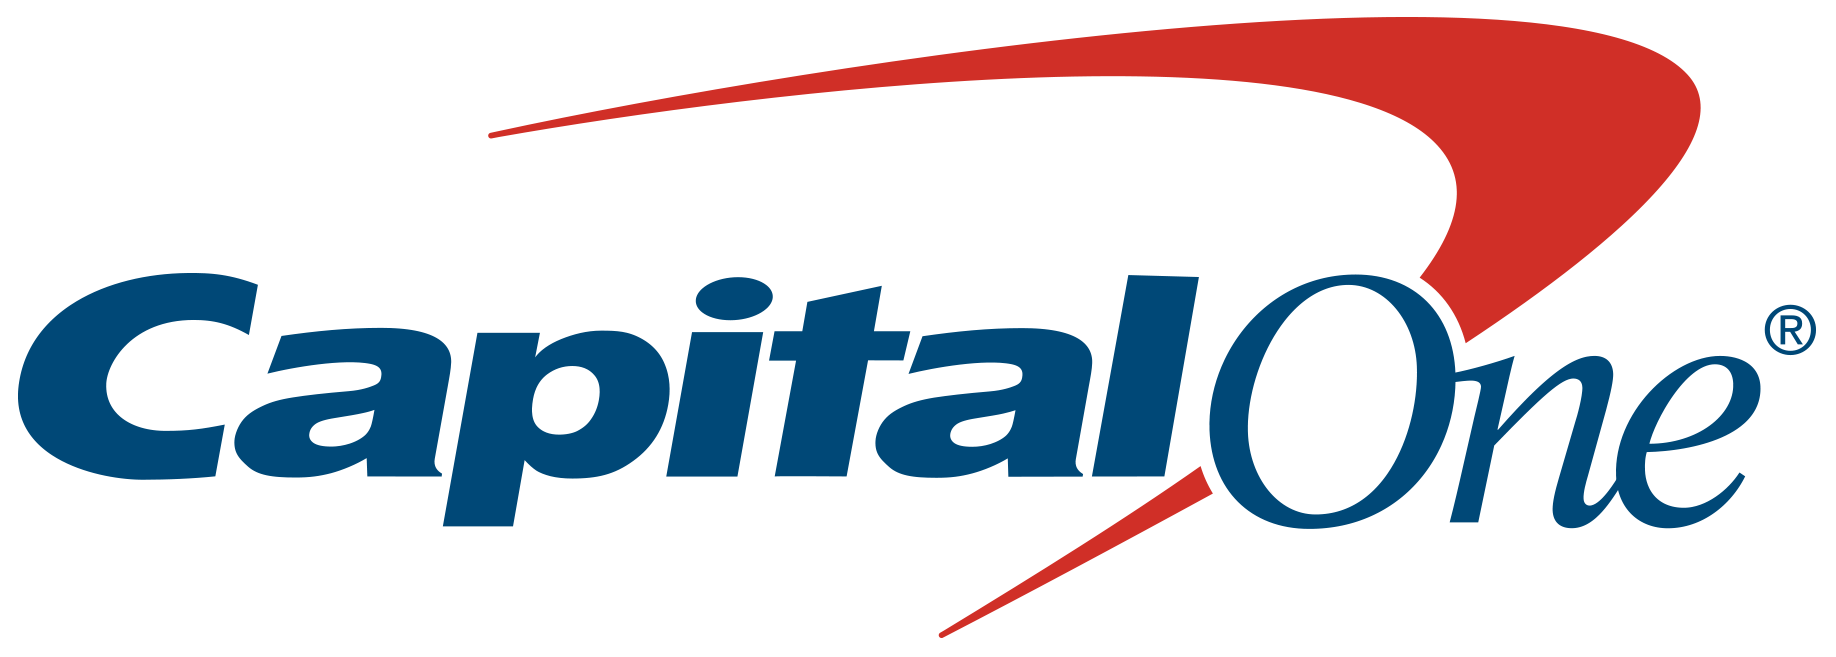 Capital One Software Help Center home page